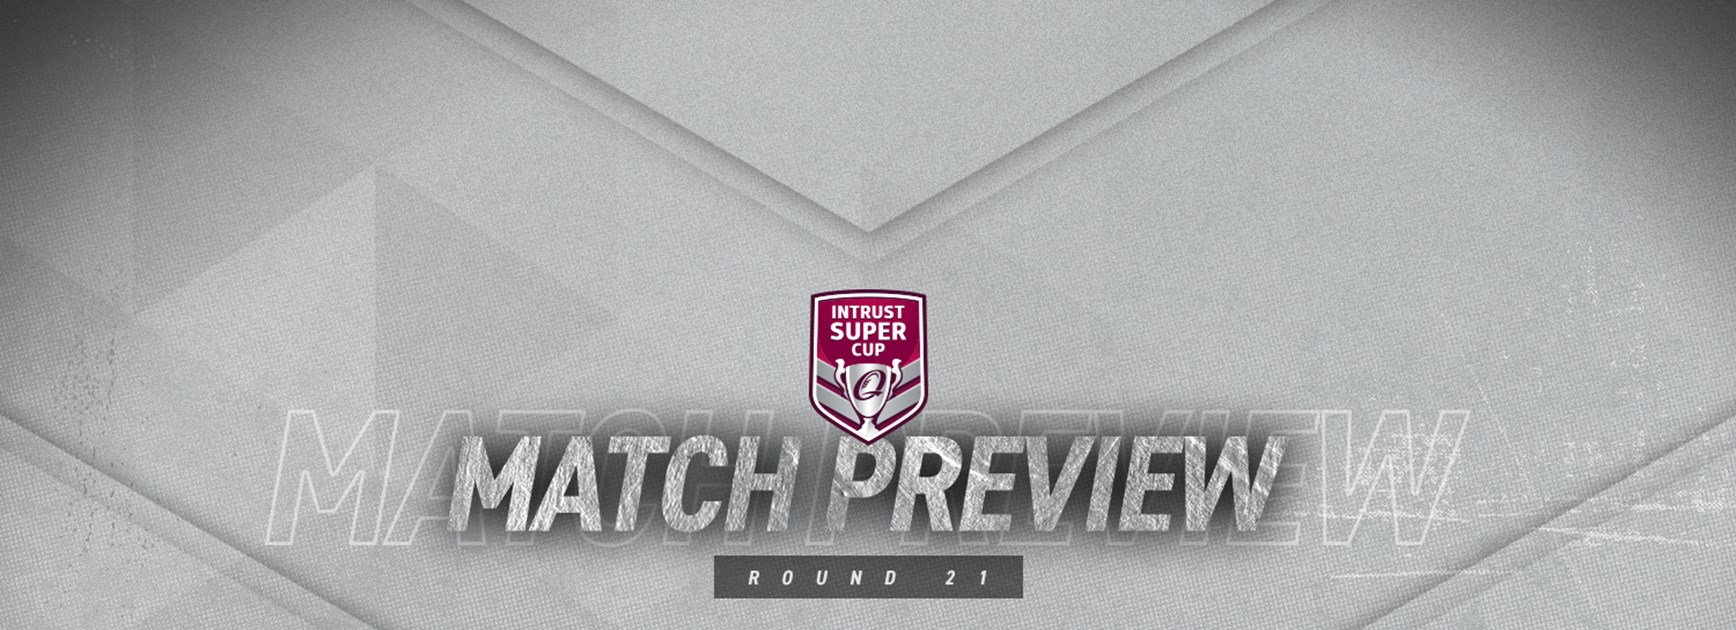 Intrust Super Cup Round 21 preview